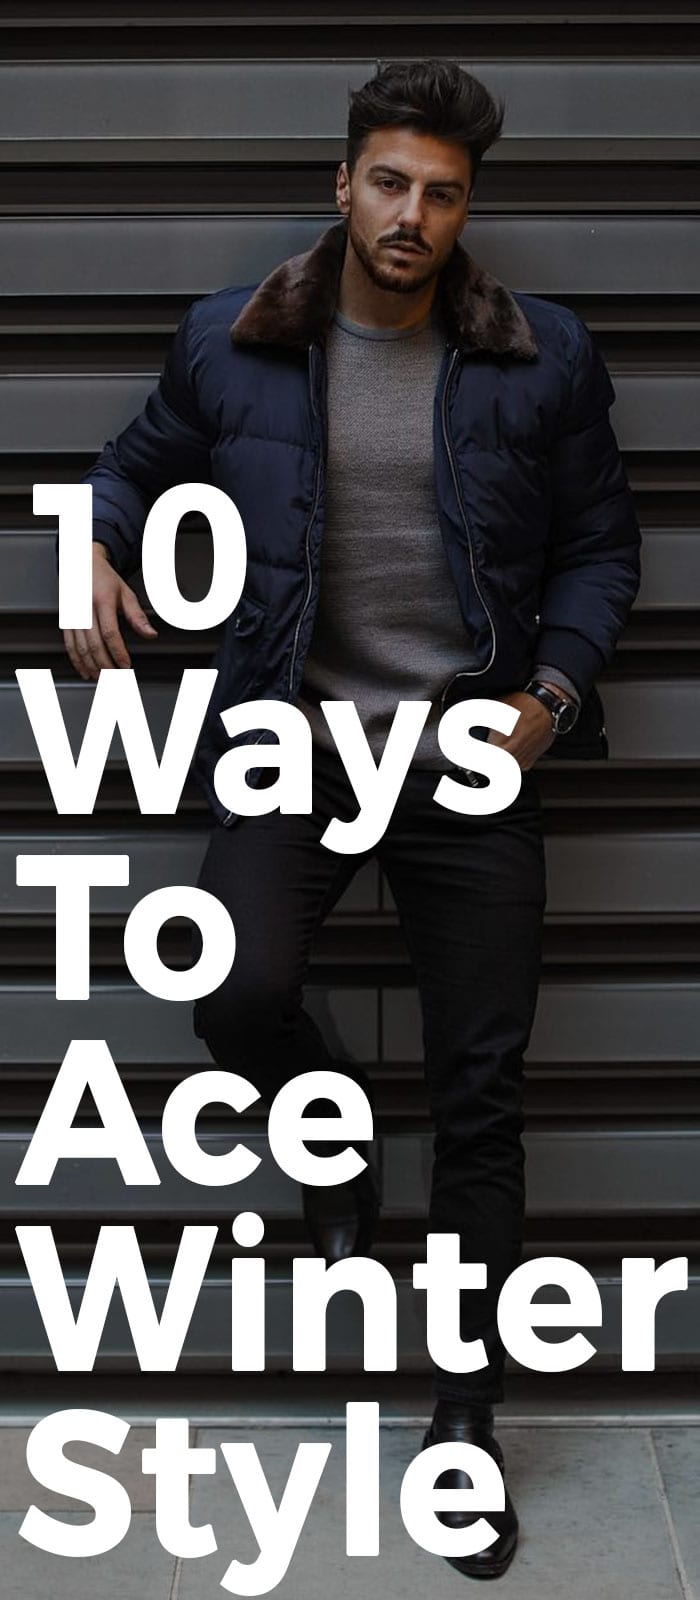 10 Ways To Ace Winter Style.